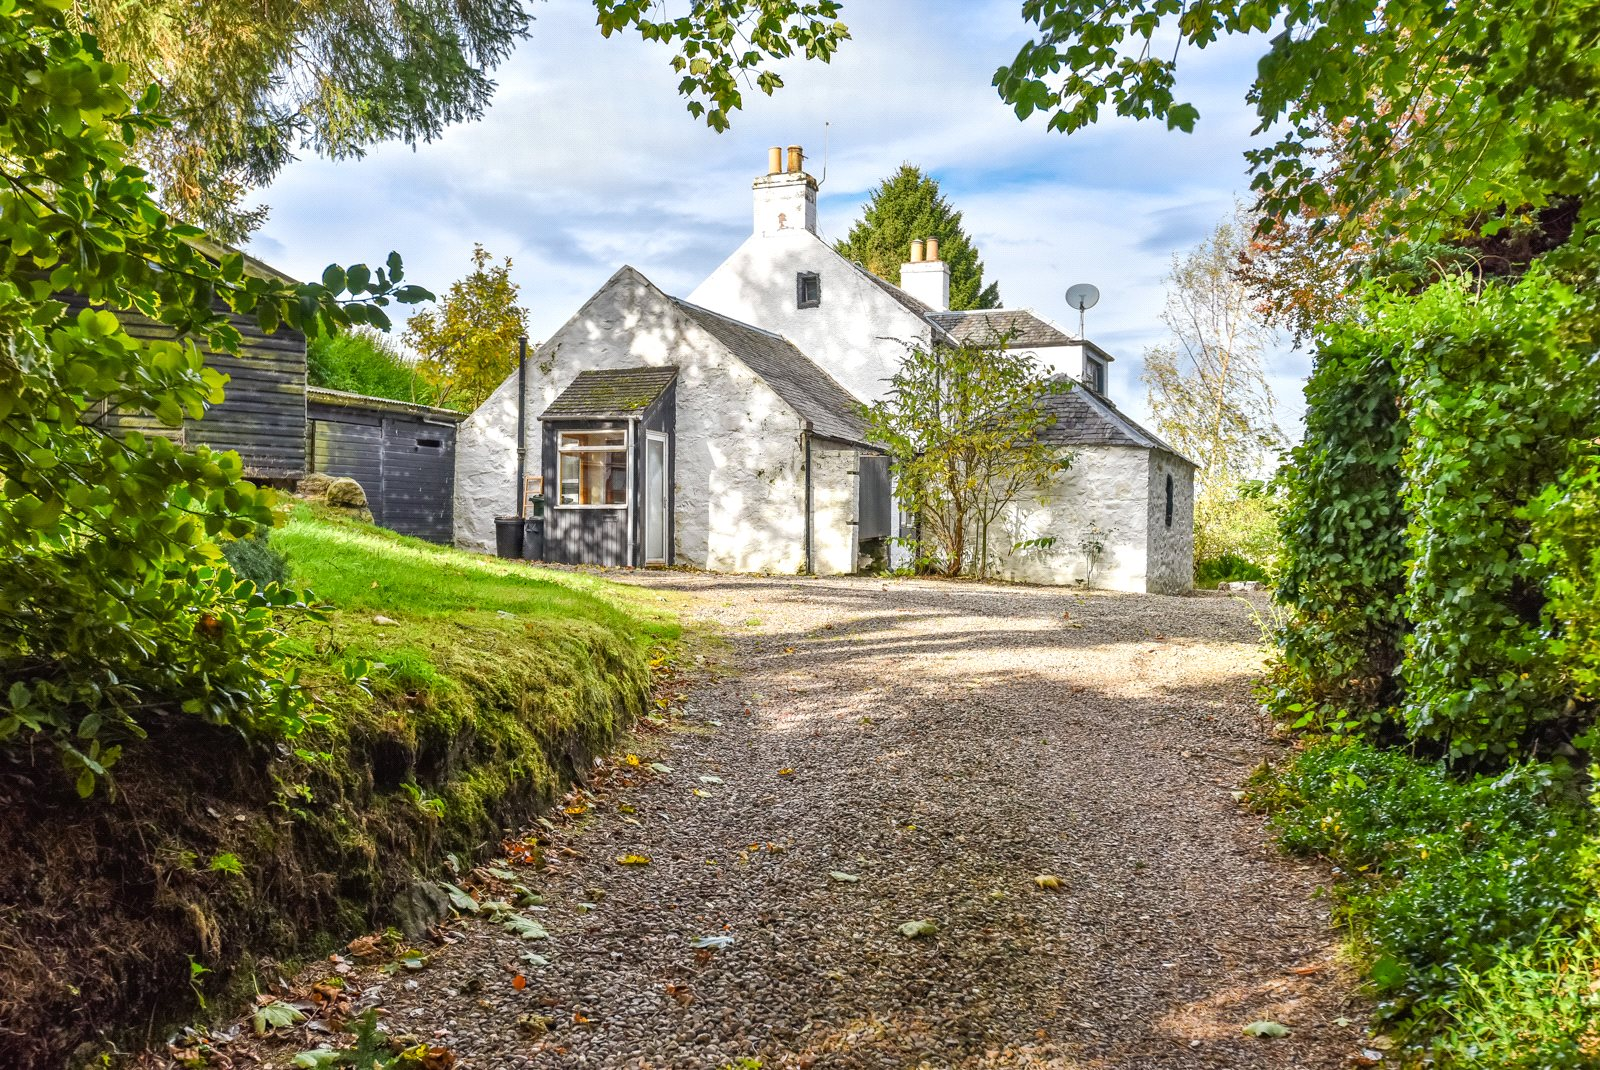 2 Bedrooms Detached House for sale in The Drums of Pitversie, Perth Road, Abernethy, Perth, Perth and Kinross, PH2